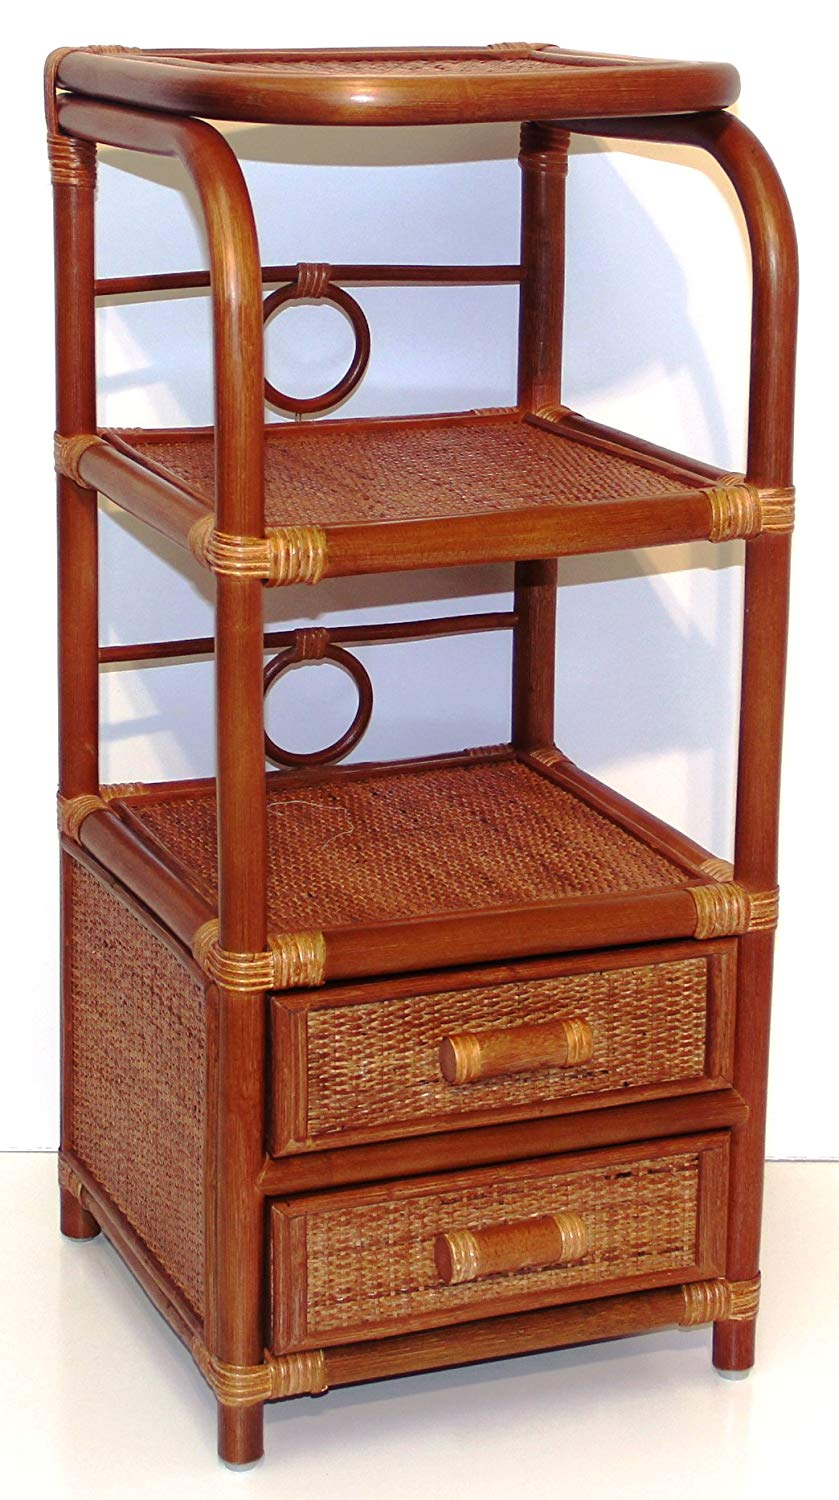 SunBear Furniture Handmade Bookcase Designer ECO Rattan Wicker with 2 Drawers, Cognac